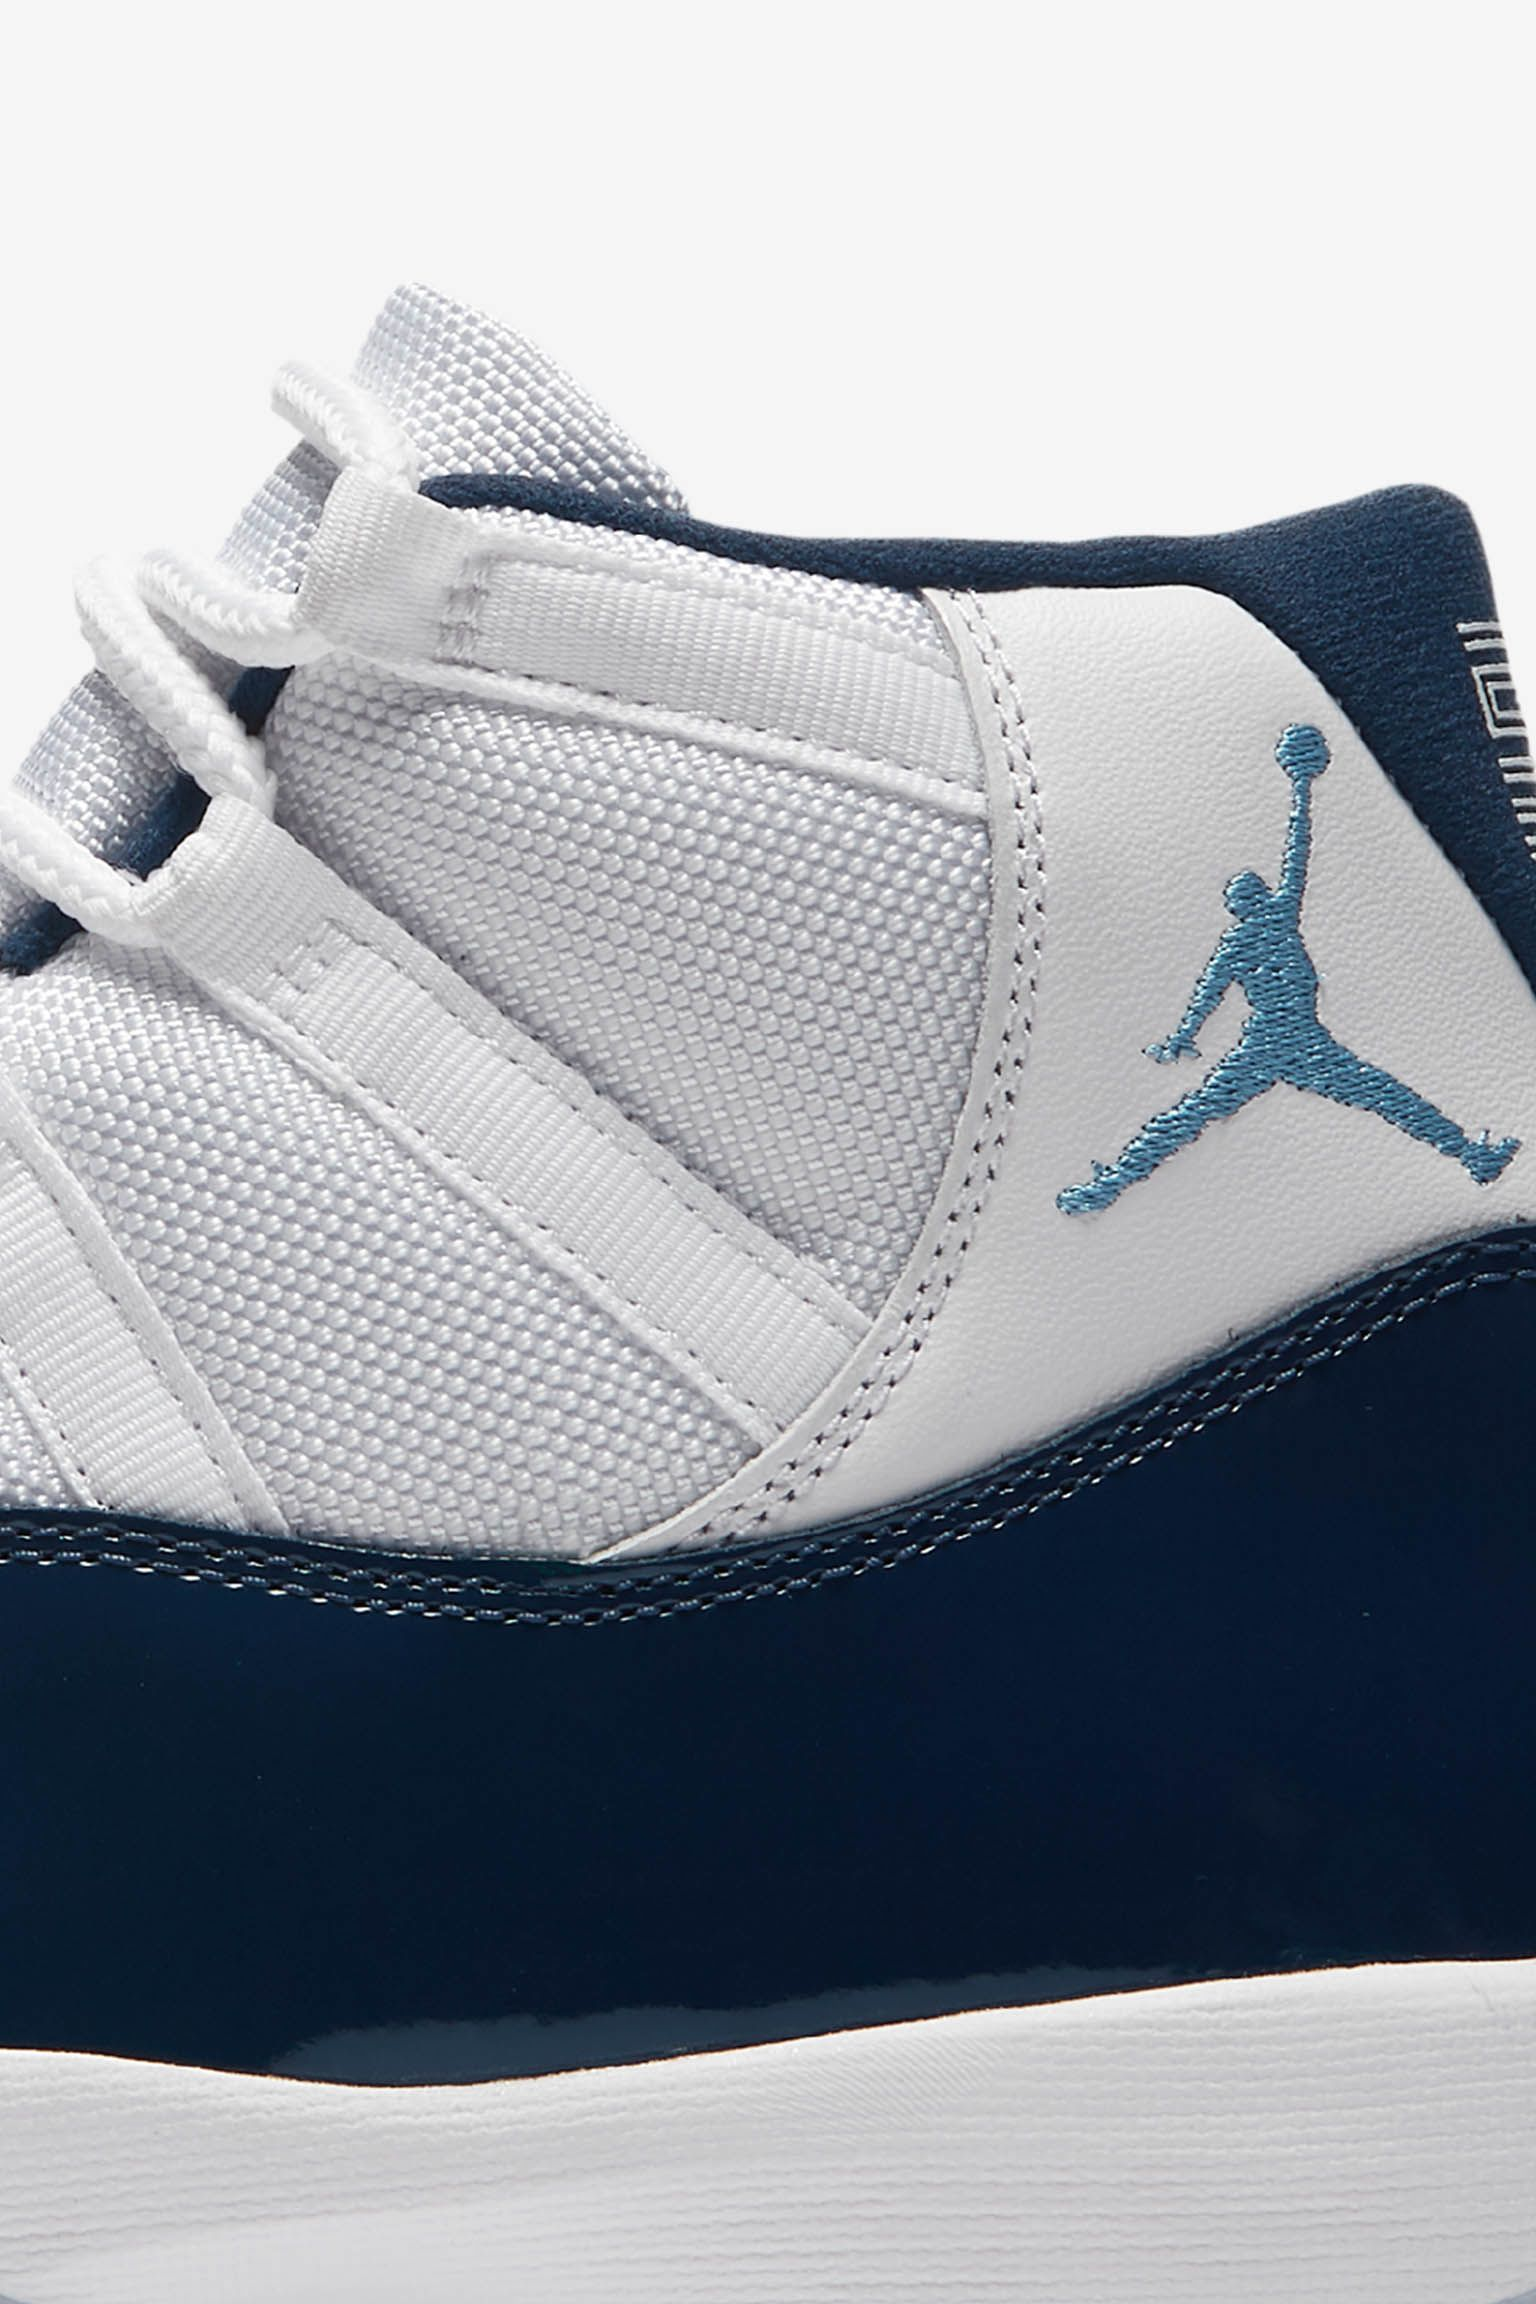 Air Jordan 11 Retro 'Midnight Navy' Release Date